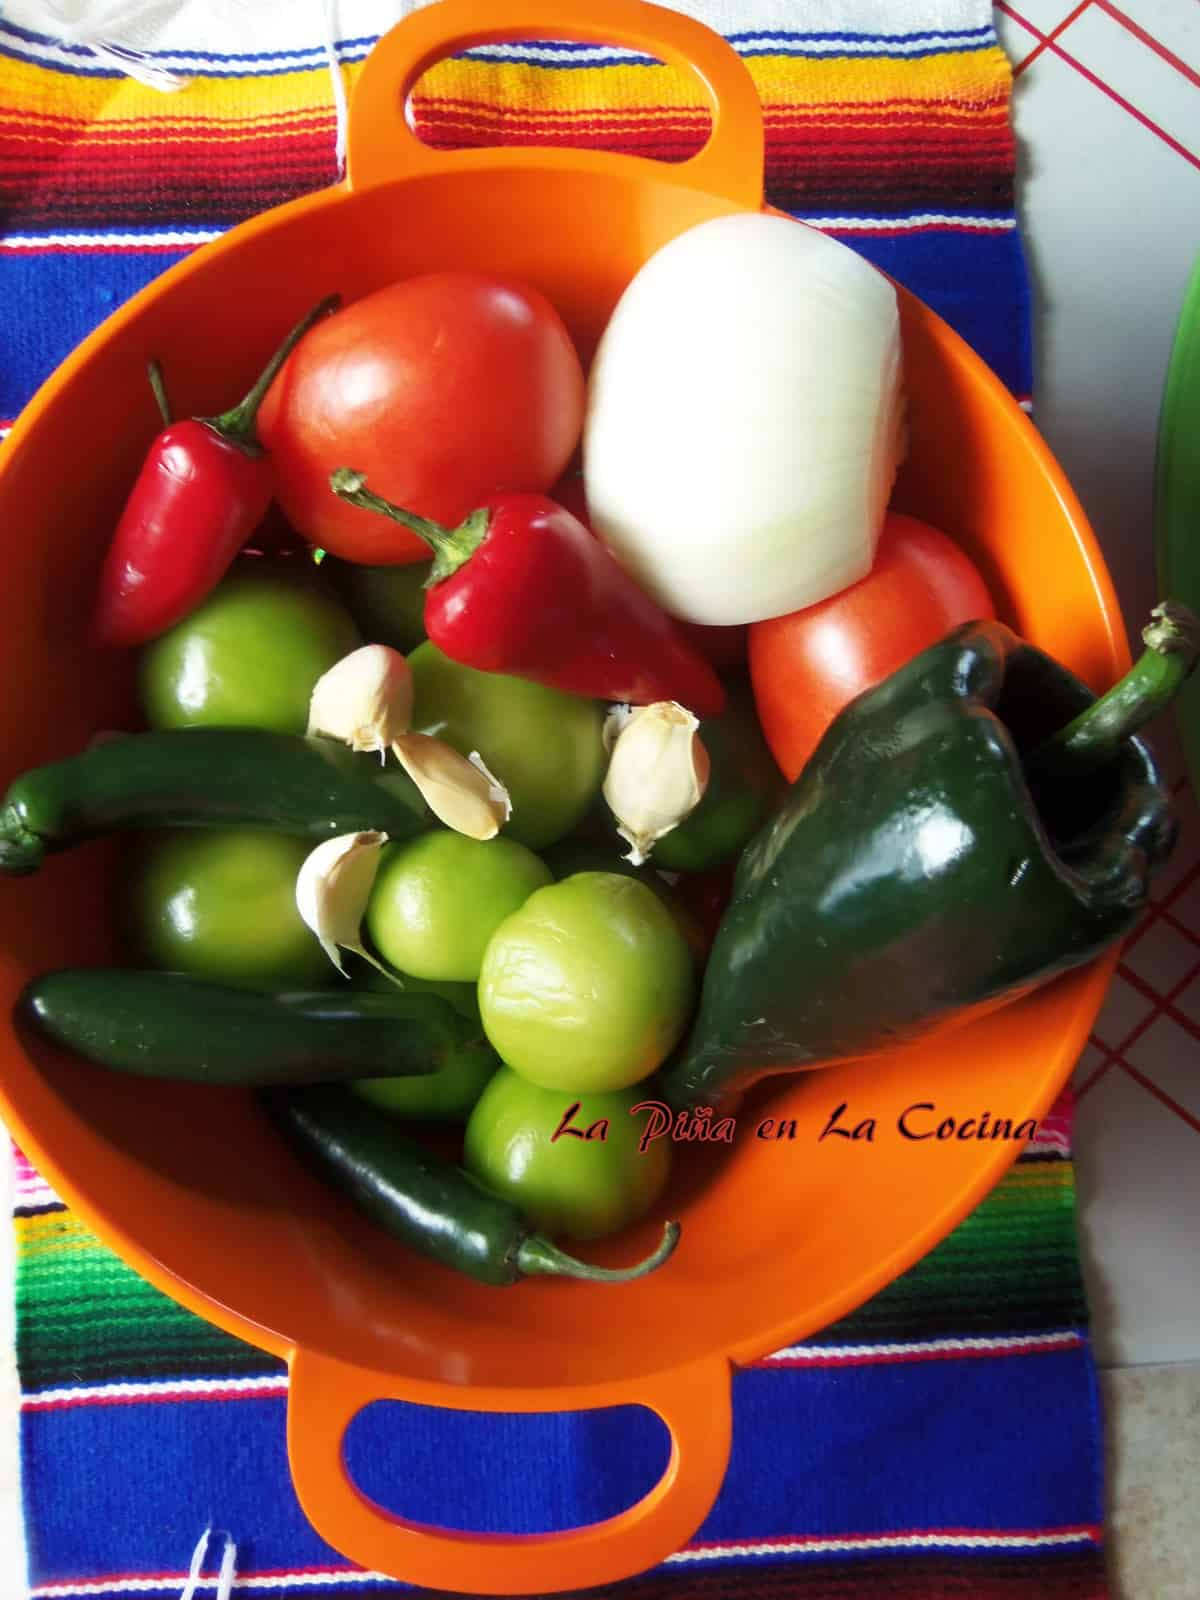 Always start with fresh ingredients for the most authentic Mexican flavors.